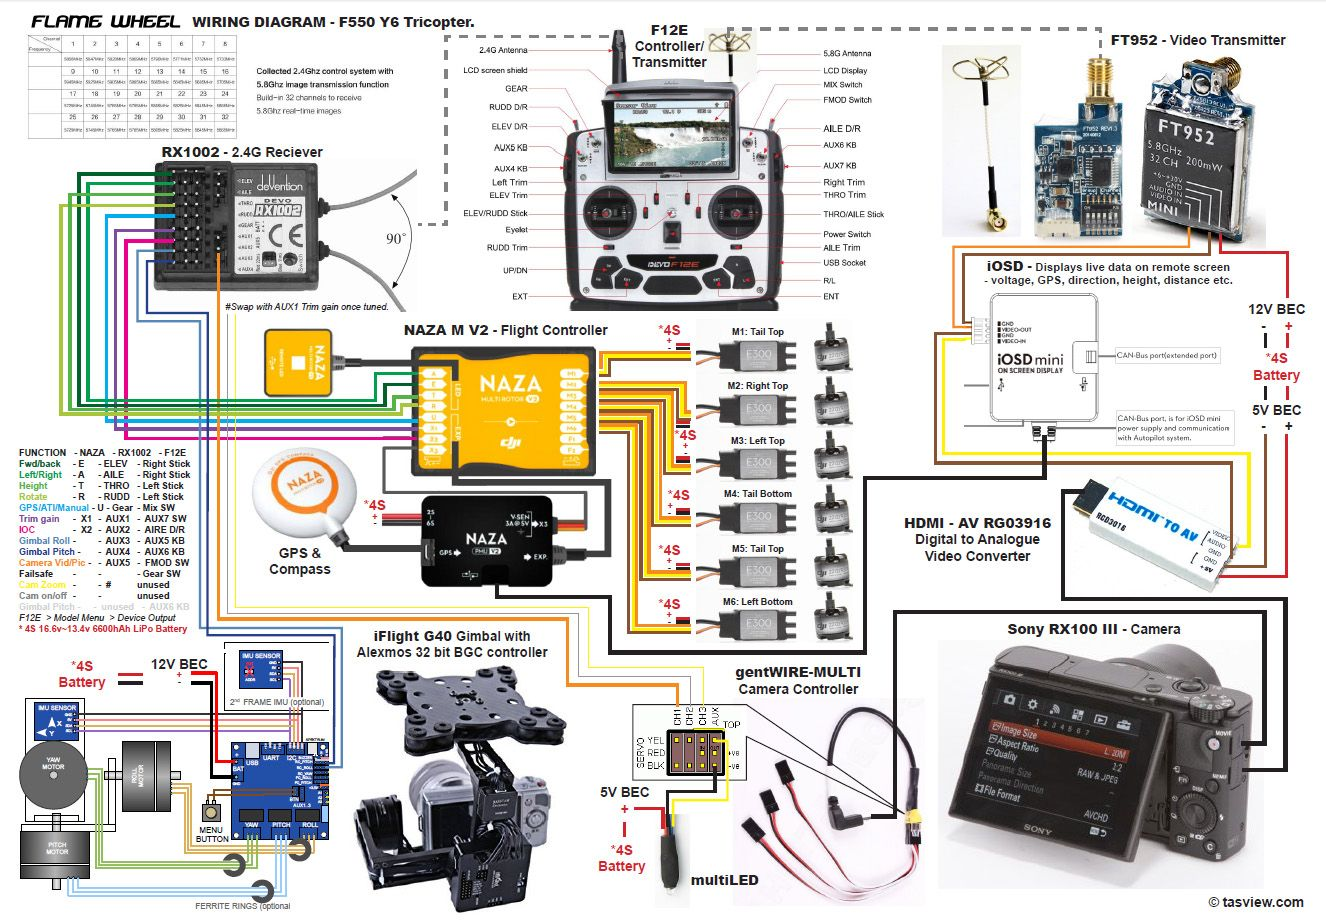 naza m v2 wiring diagram f500 rx100 g40 wiring drone and technologie pinterest wire [ 1326 x 920 Pixel ]